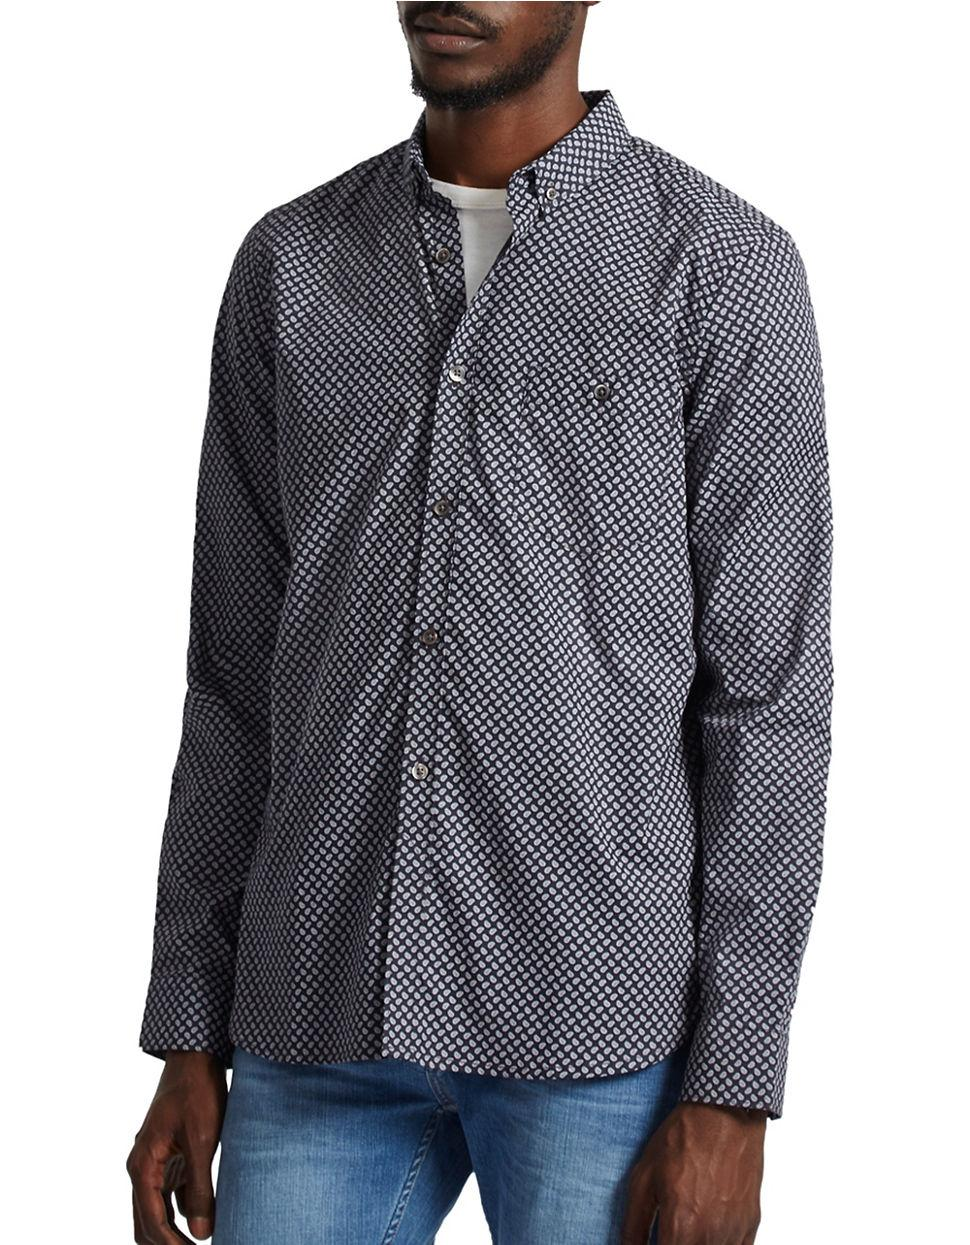 Lyst french connection long sleeve print shirt in blue for French cut shirt sleeve